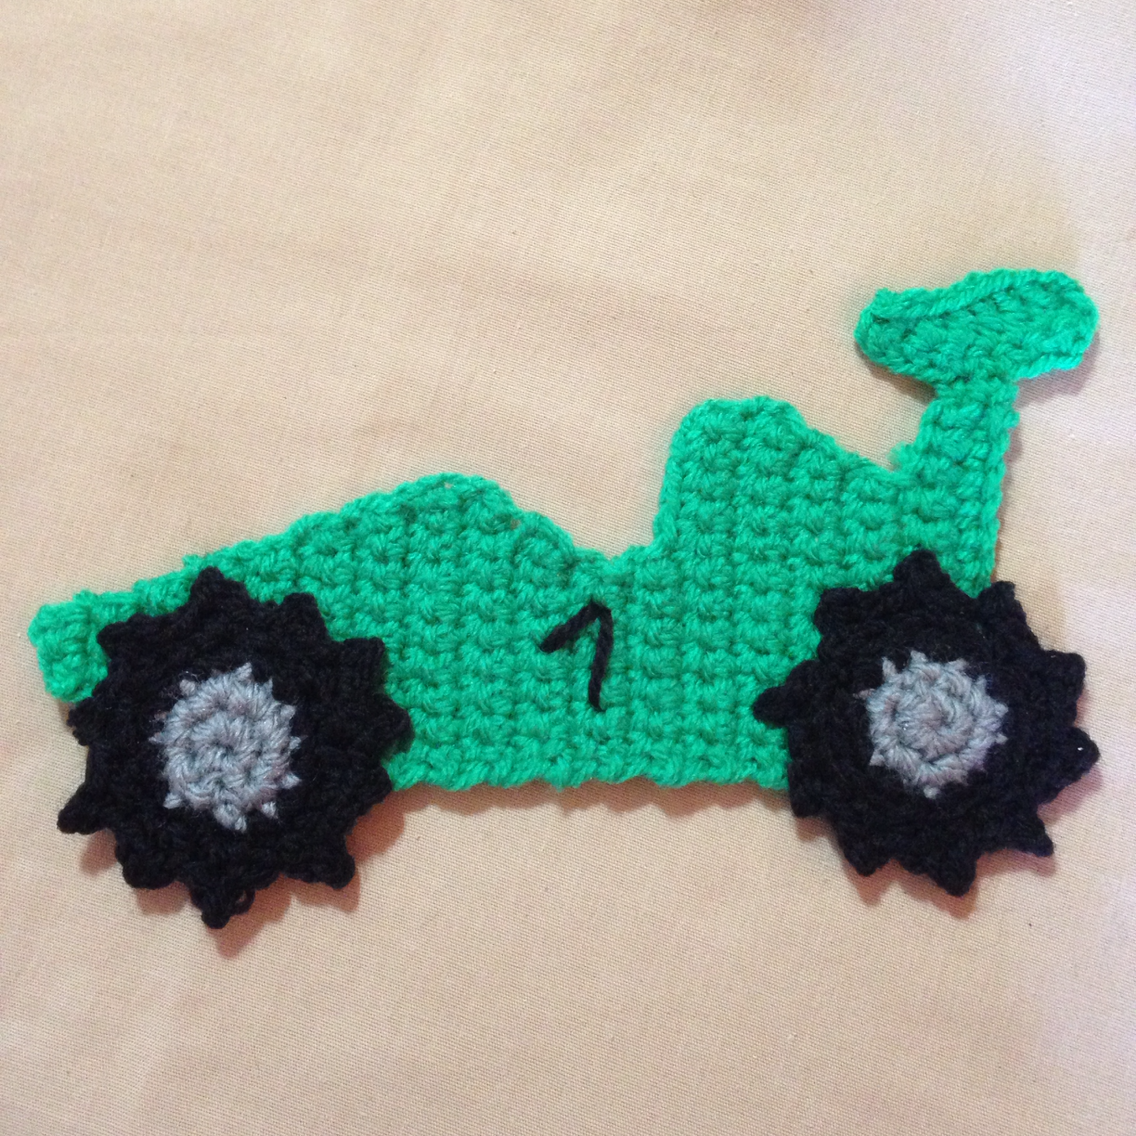 Crochet a Cute Race Car Applique | appliques | Pinterest | Crochet ...